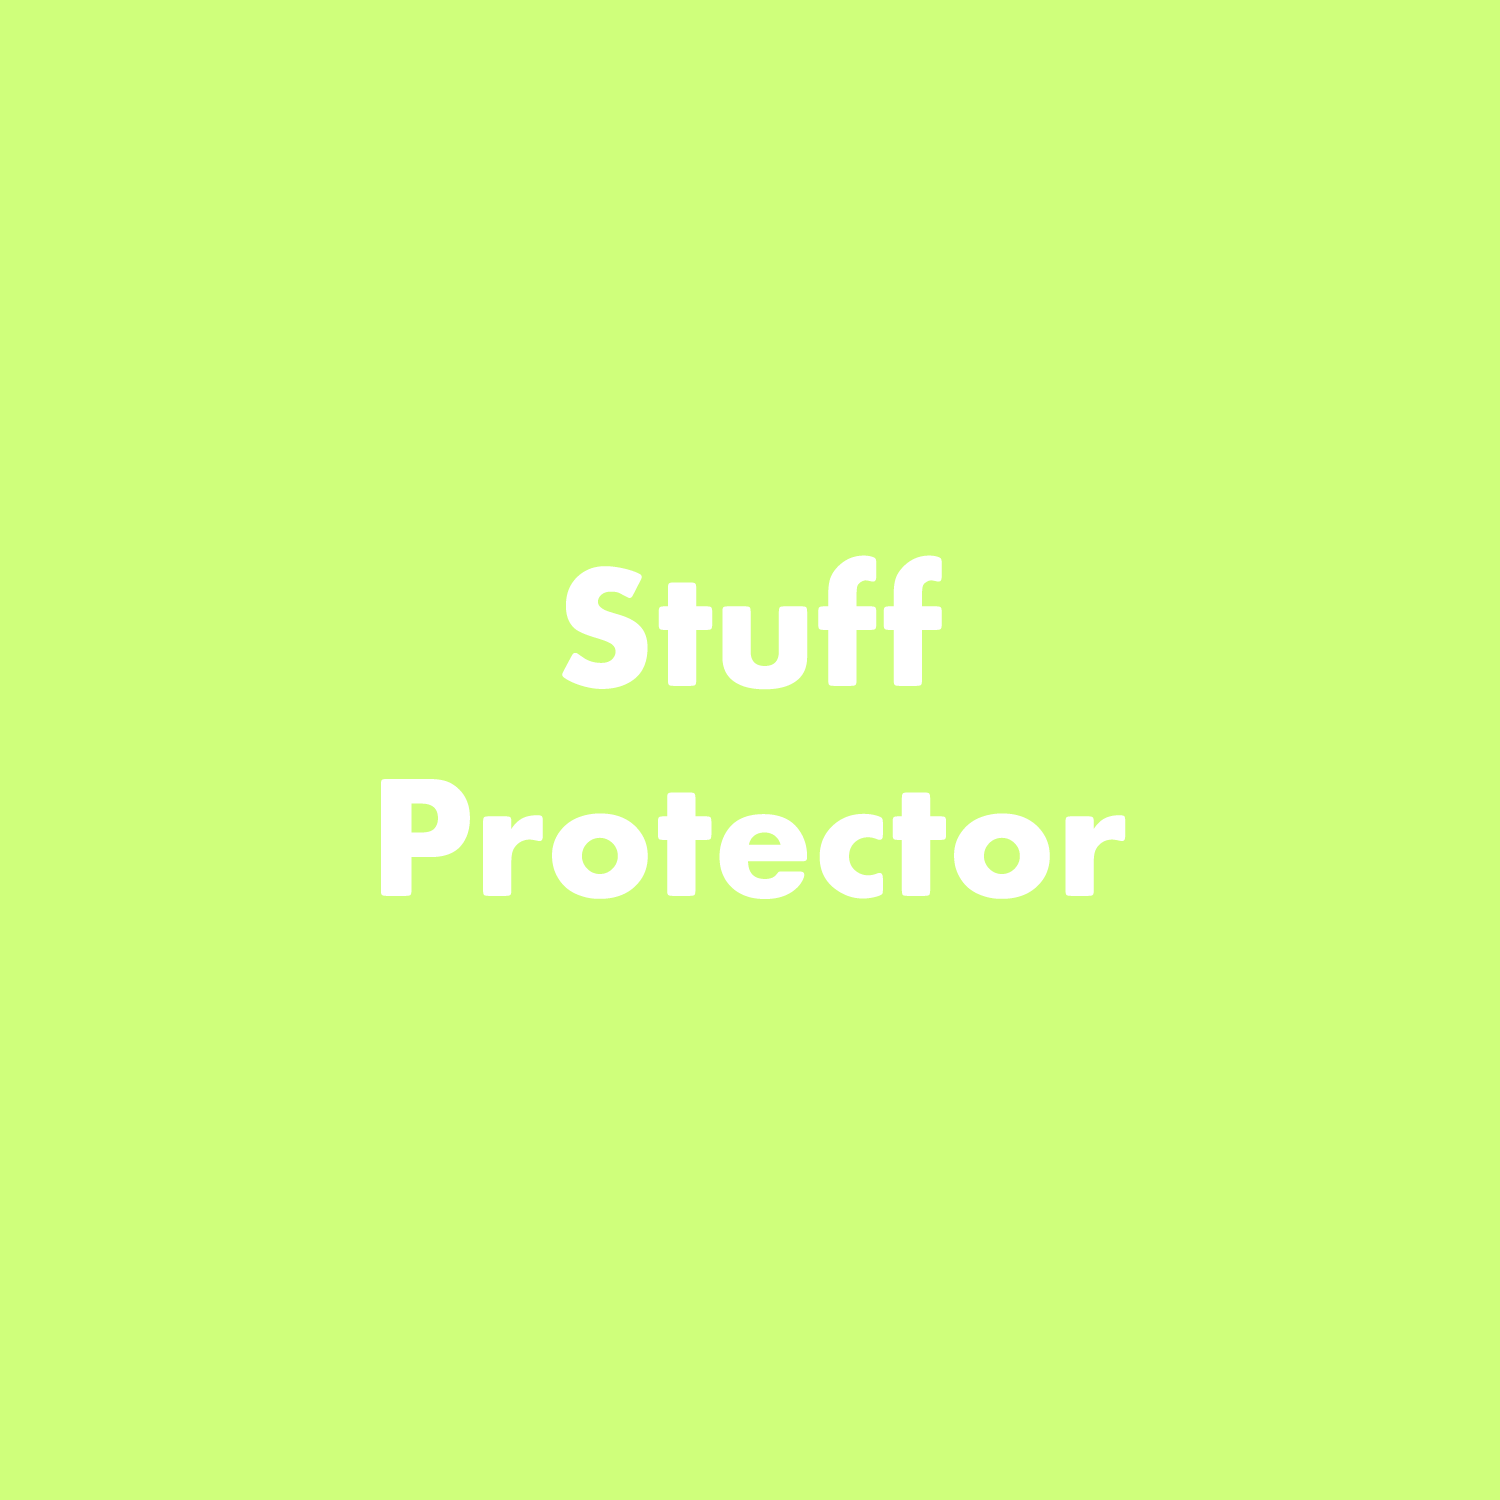 Stuff-Protector.png